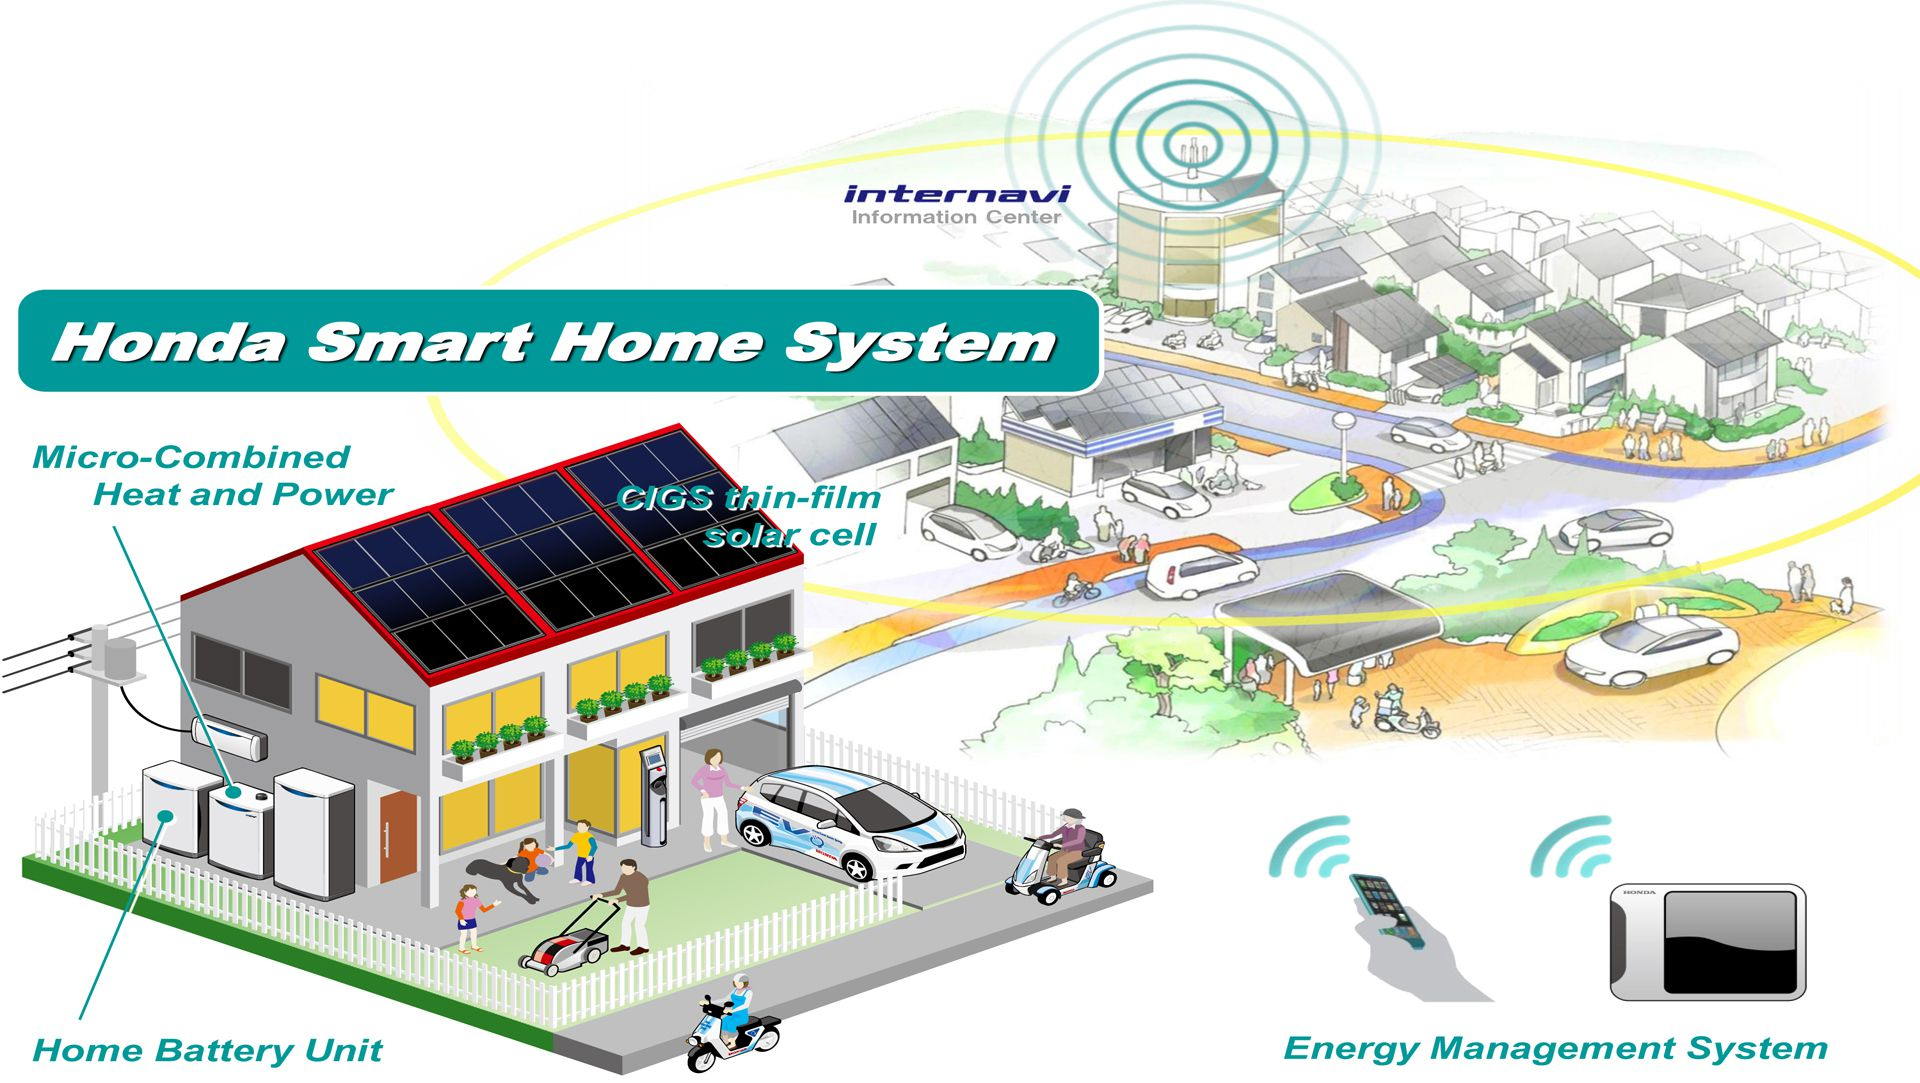 Smart Home Systeme honda unveils demonstration test house that features honda smart